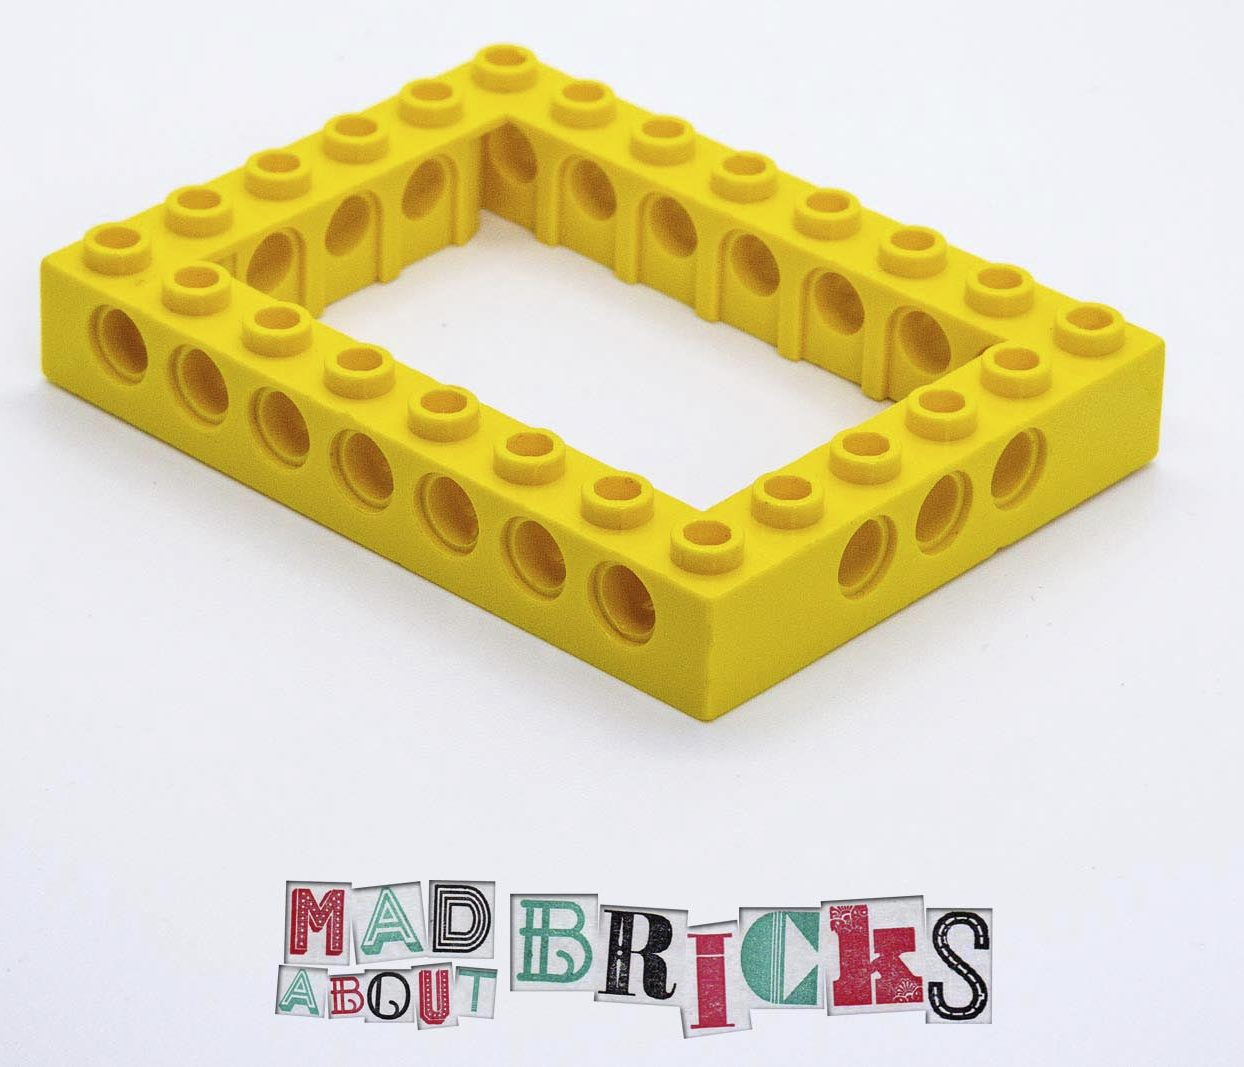 Lego 32532 6x8, Ø4,85 Technic Brick with Holes 4162899